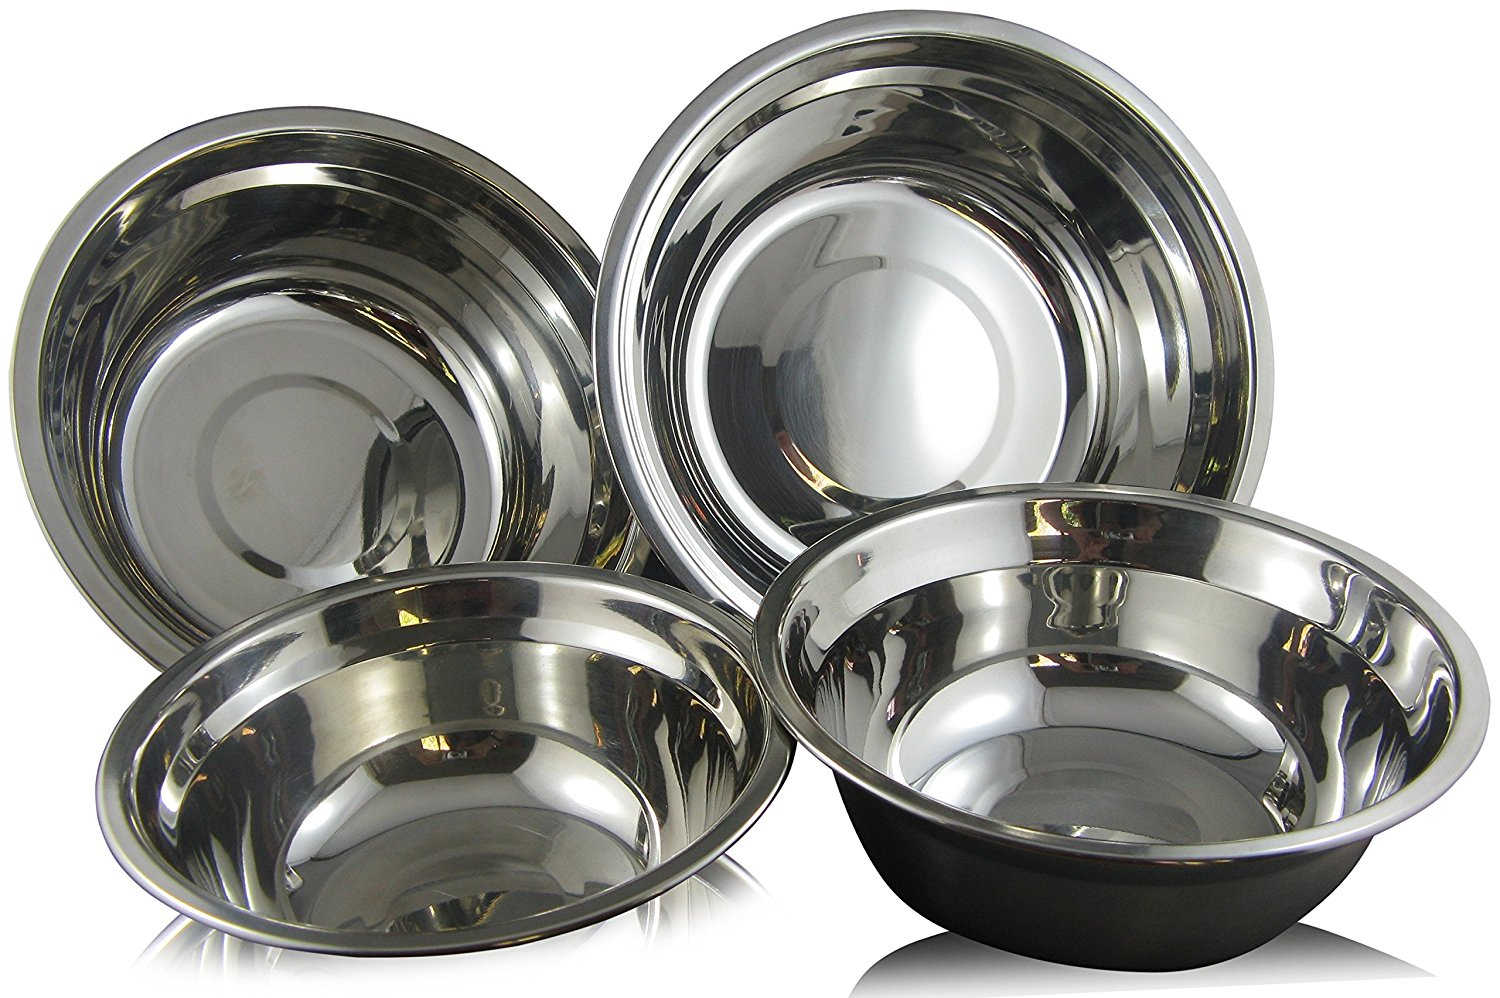 checkered chef stainless steel mixing bowl set 4 metal prep bowls dishwasher safe party. Black Bedroom Furniture Sets. Home Design Ideas